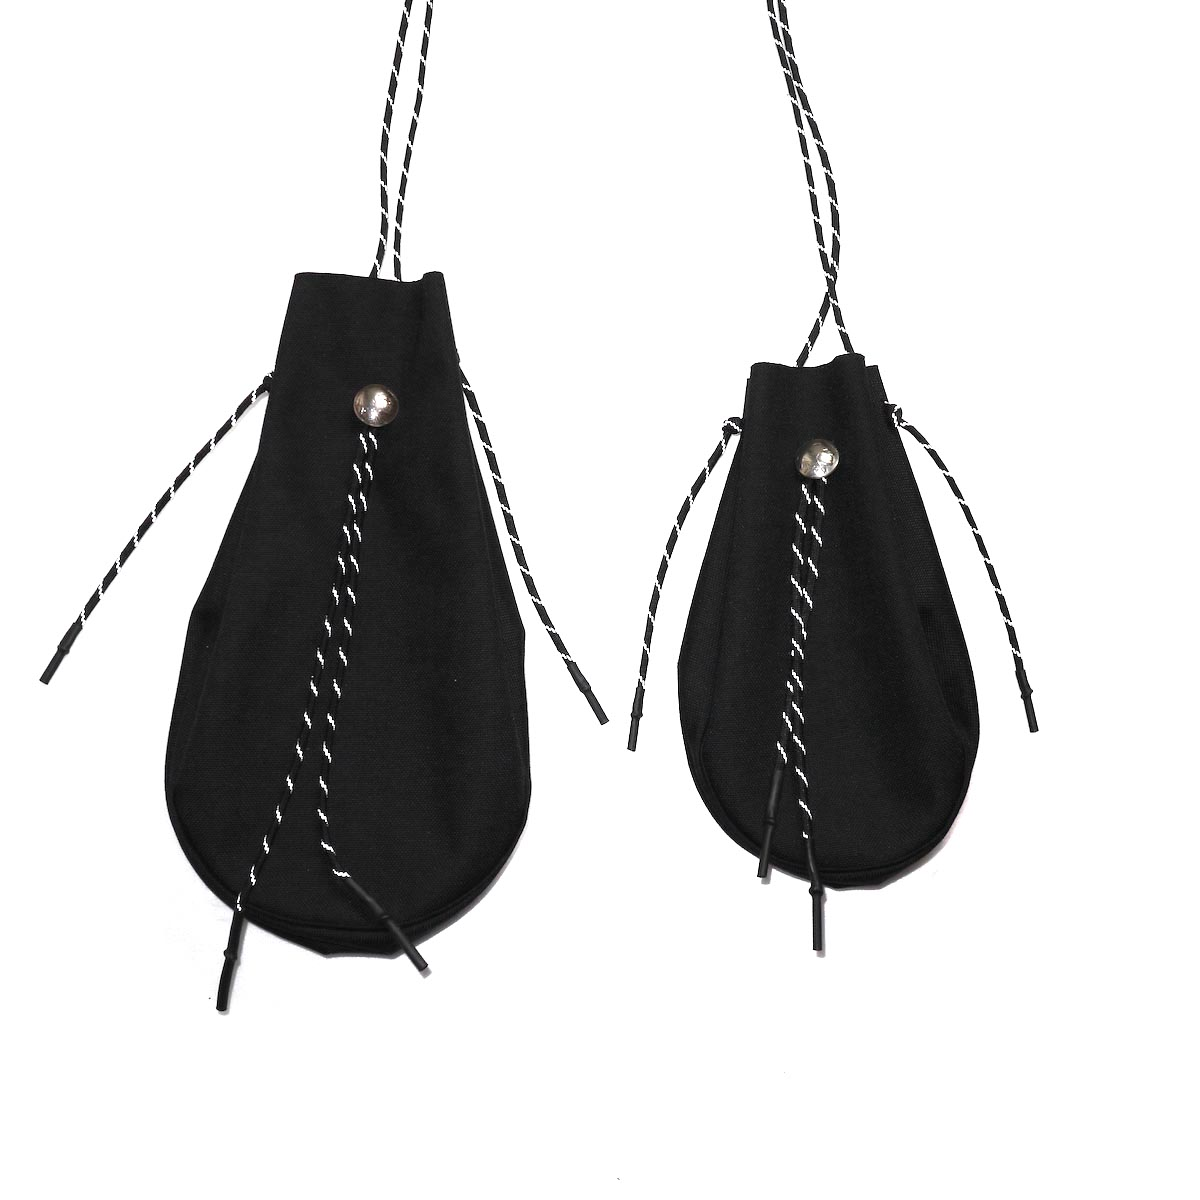 吉岡衣料店 / drawstring bag -S-. w/concho. (Black) LとSの比較